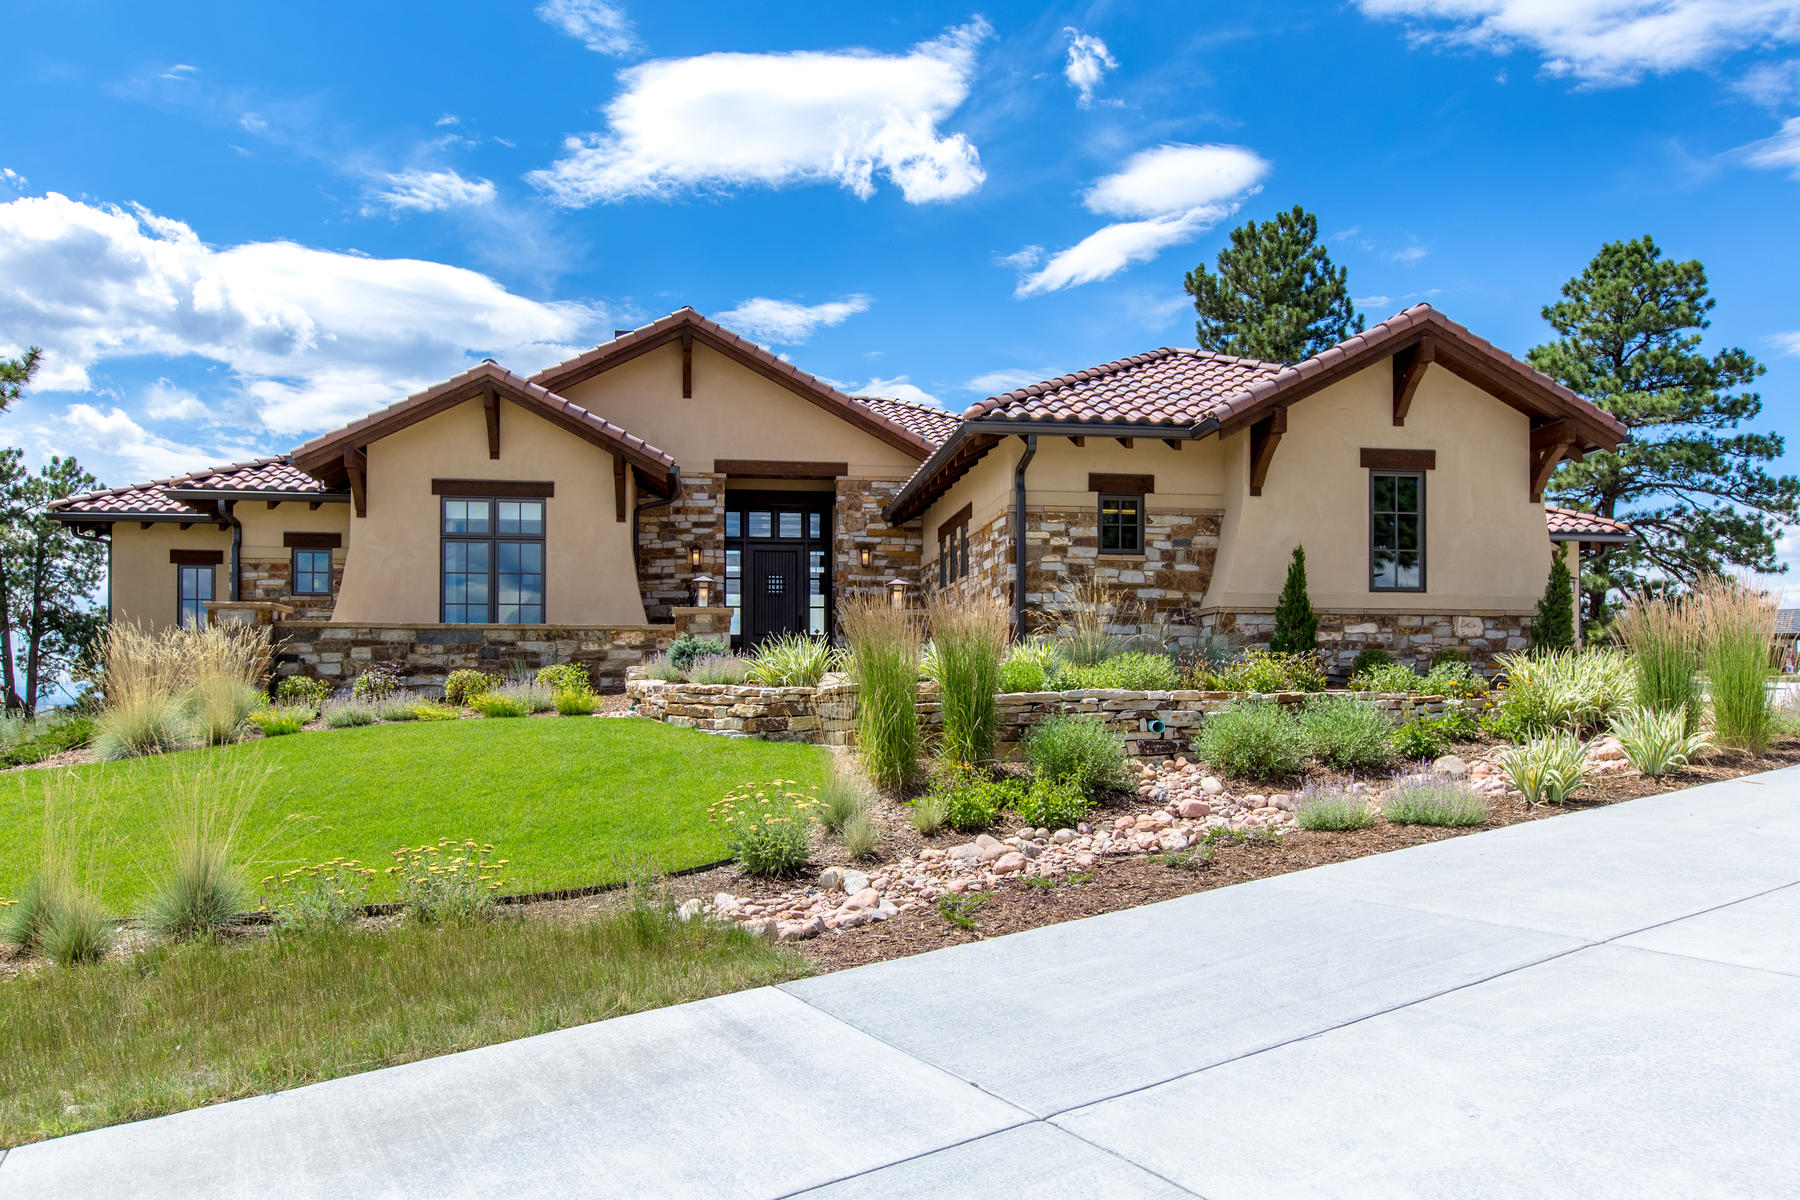 Single Family Homes for Sale at Live in One of Metro-Denver's Most Desirable Golf Club Communities 7309 Prairie Star Court, Parker, Colorado 80134 United States